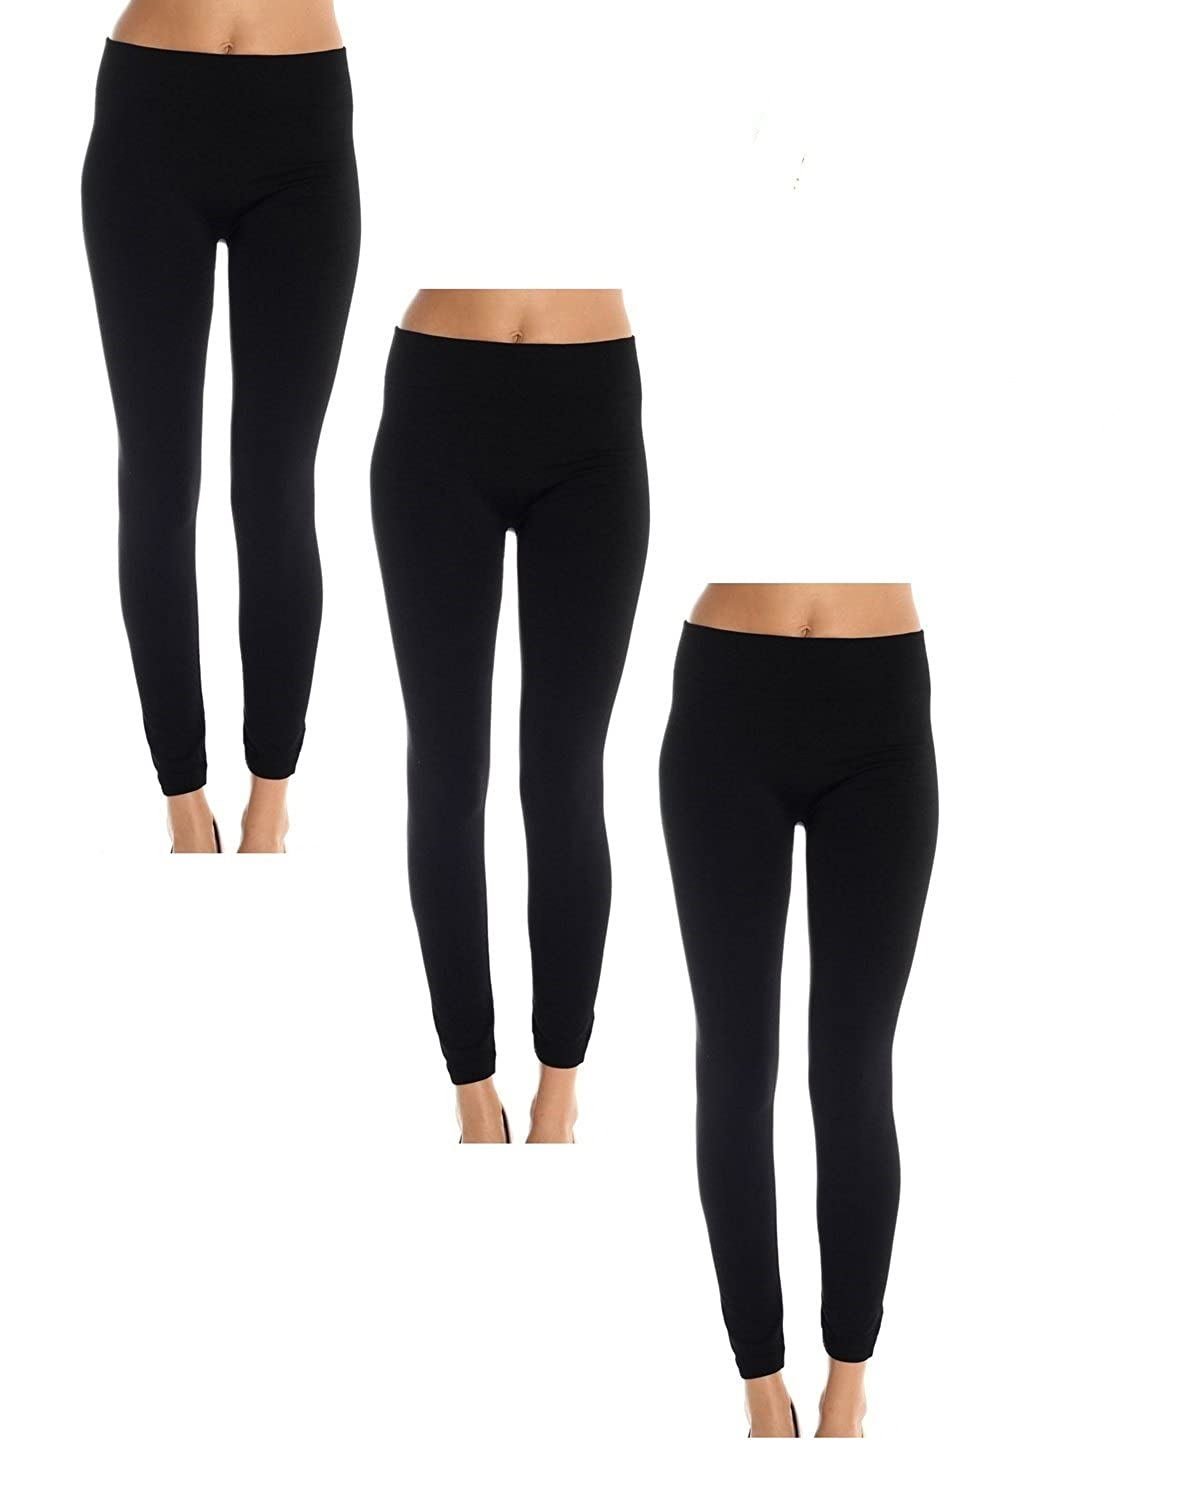 4e84ae2e74304 3 PACK OF BLACK LEGGINGS: Our classic black leggings are our bestsellers,  which is why these value sets include not 1 … not 2 … but 3 pairs each!